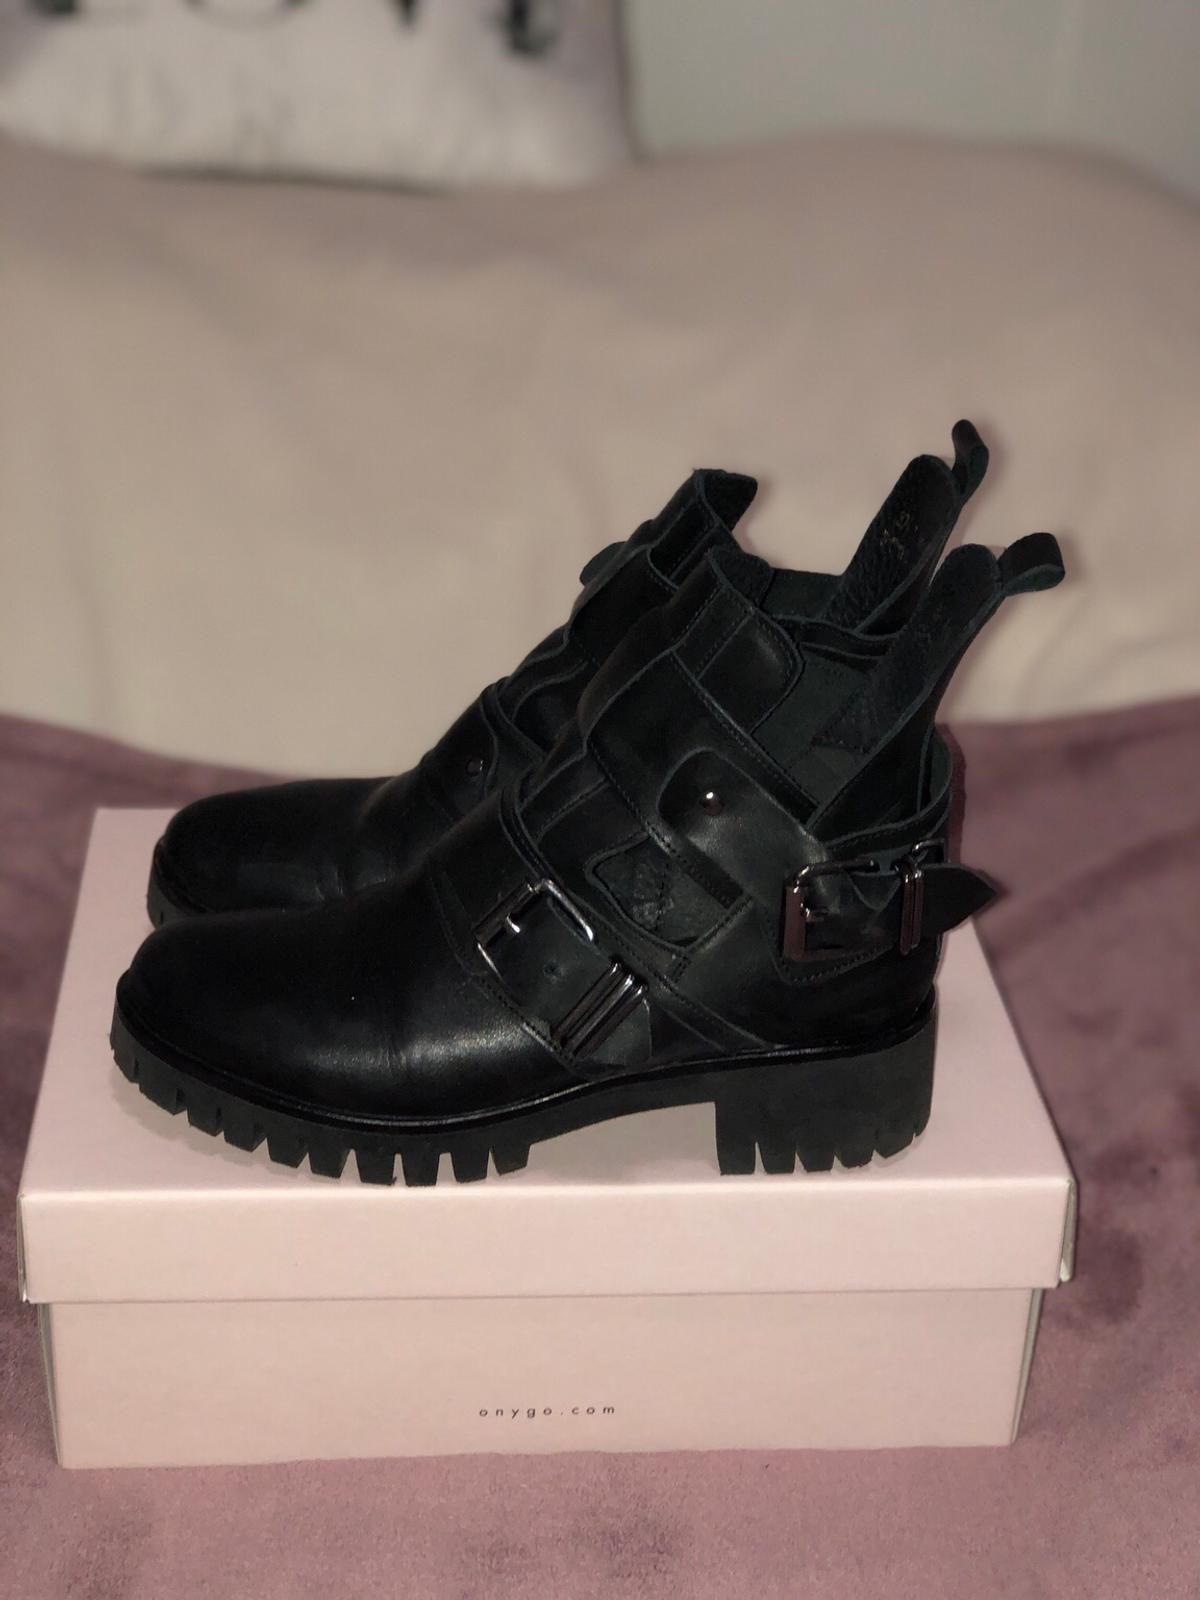 newest e1586 924ab ONYGO Sharon Black Cut Out Stiefeletten